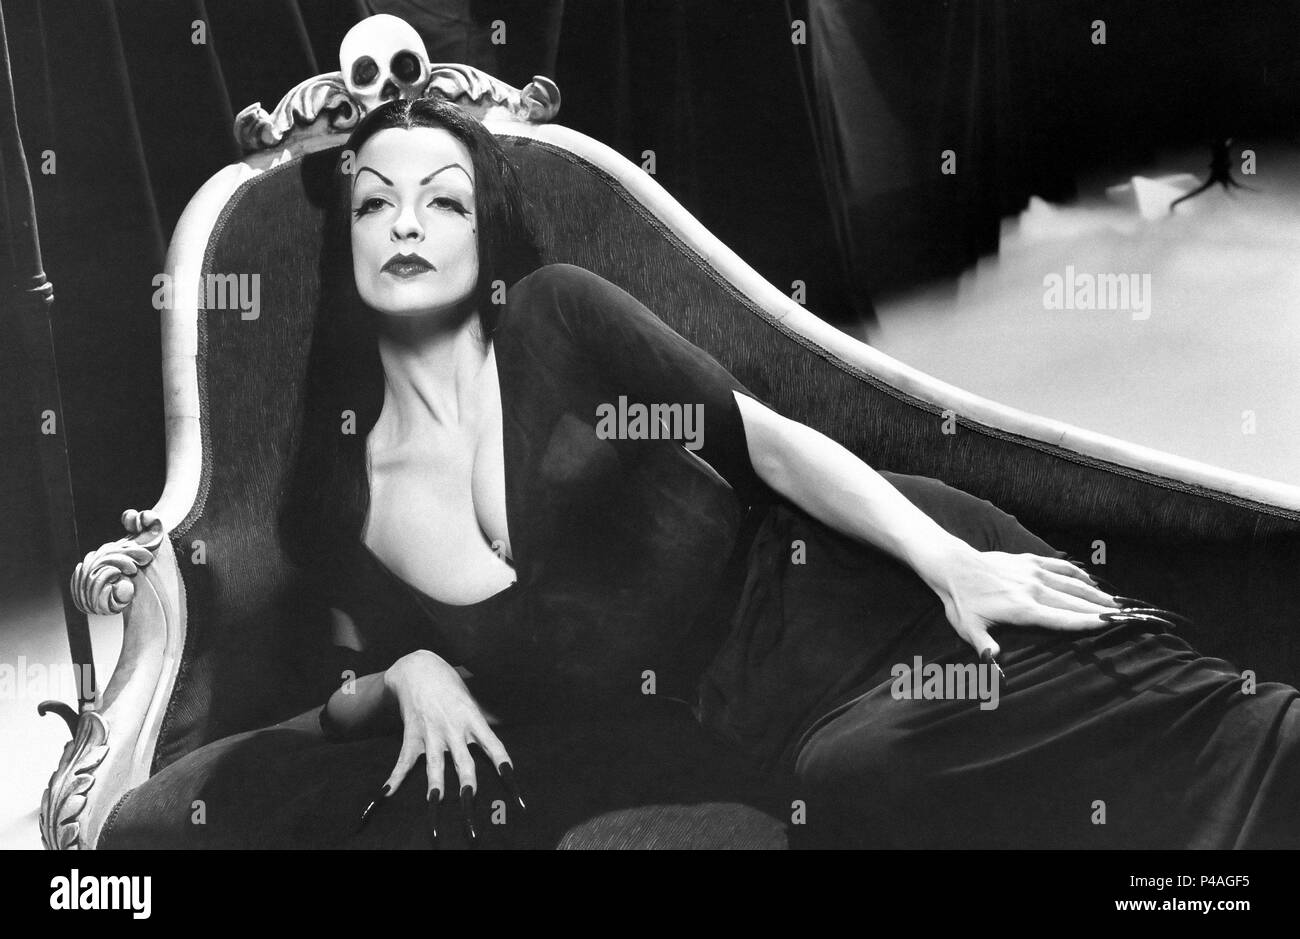 Original Film Title: ED WOOD.  English Title: ED WOOD.  Film Director: TIM BURTON.  Year: 1994.  Stars: LISA MARIE. Credit: TOUCHSTONE PICTURES / Album - Stock Image